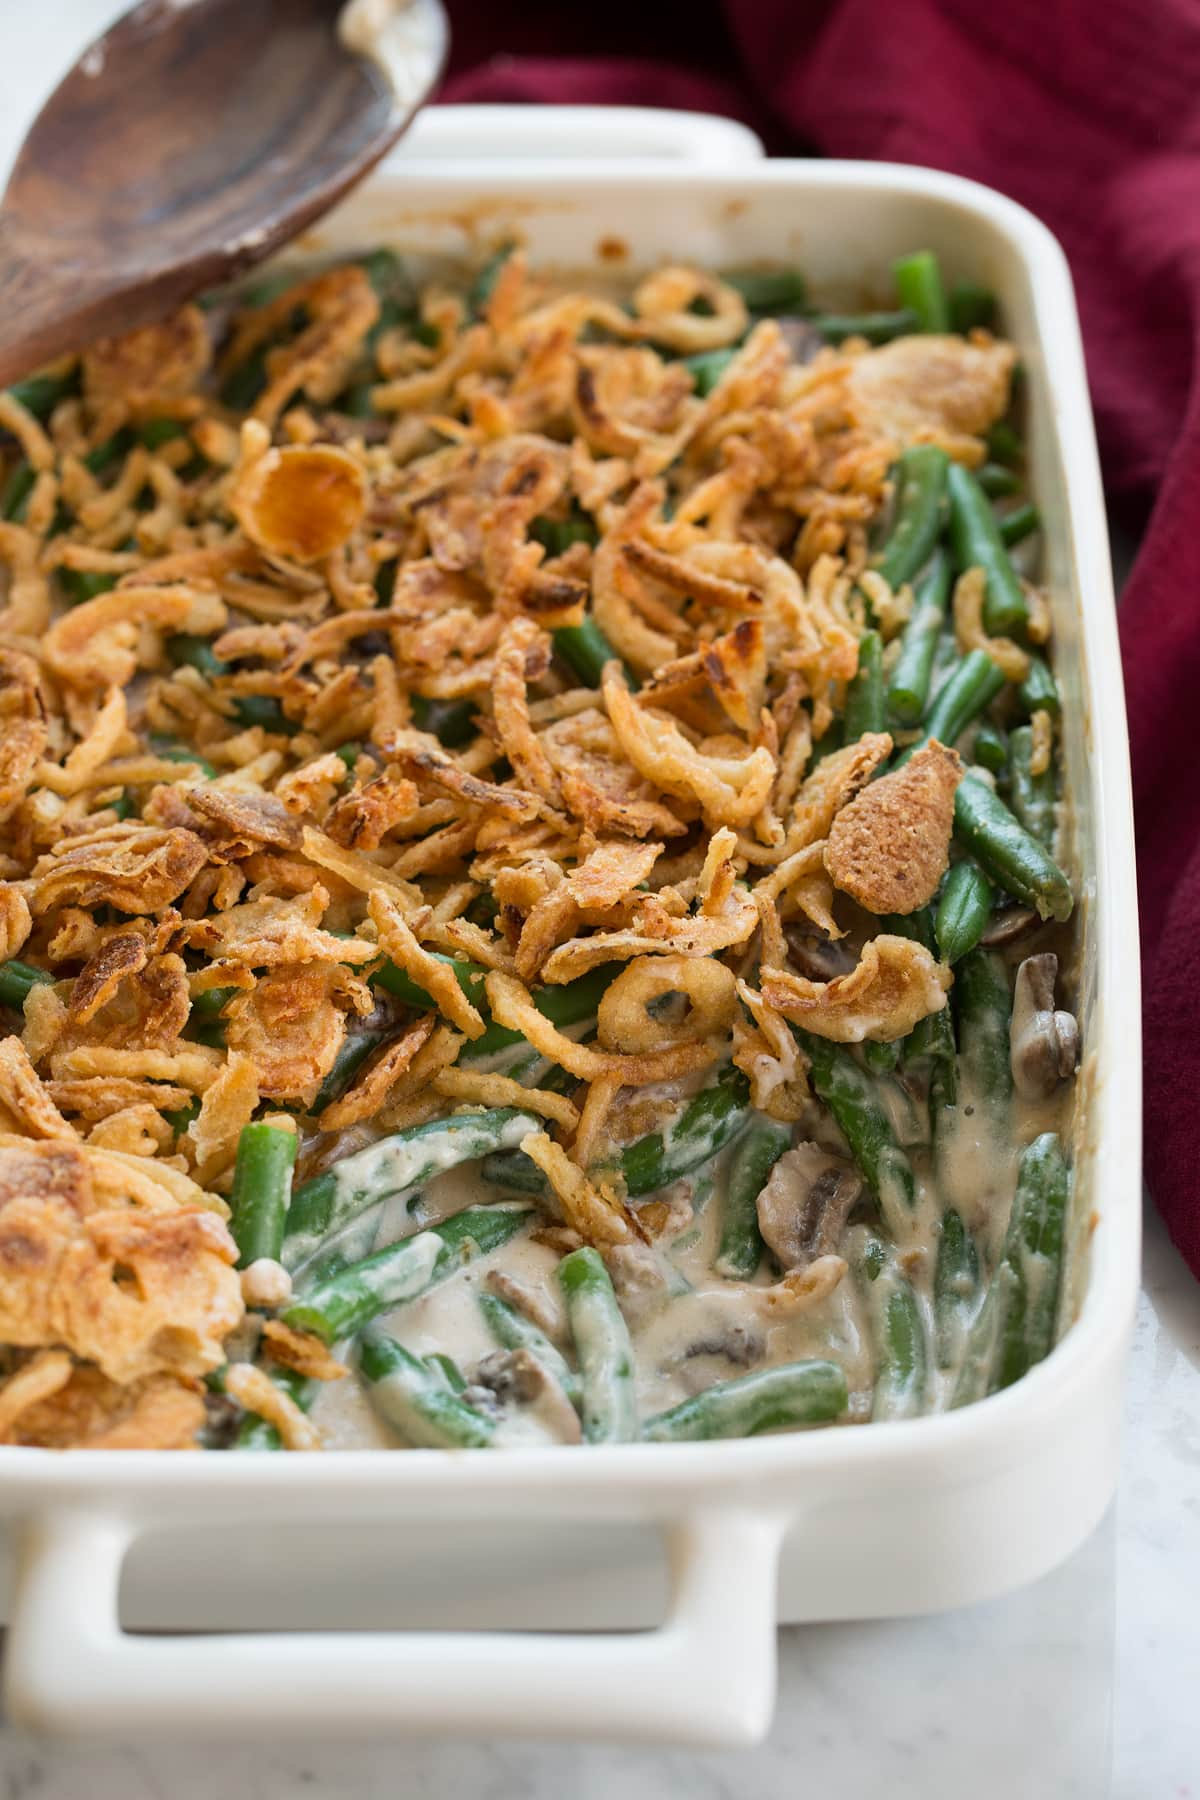 Green Bean Casserole in a white ceramic baking dish with a scoop removed to show filling.